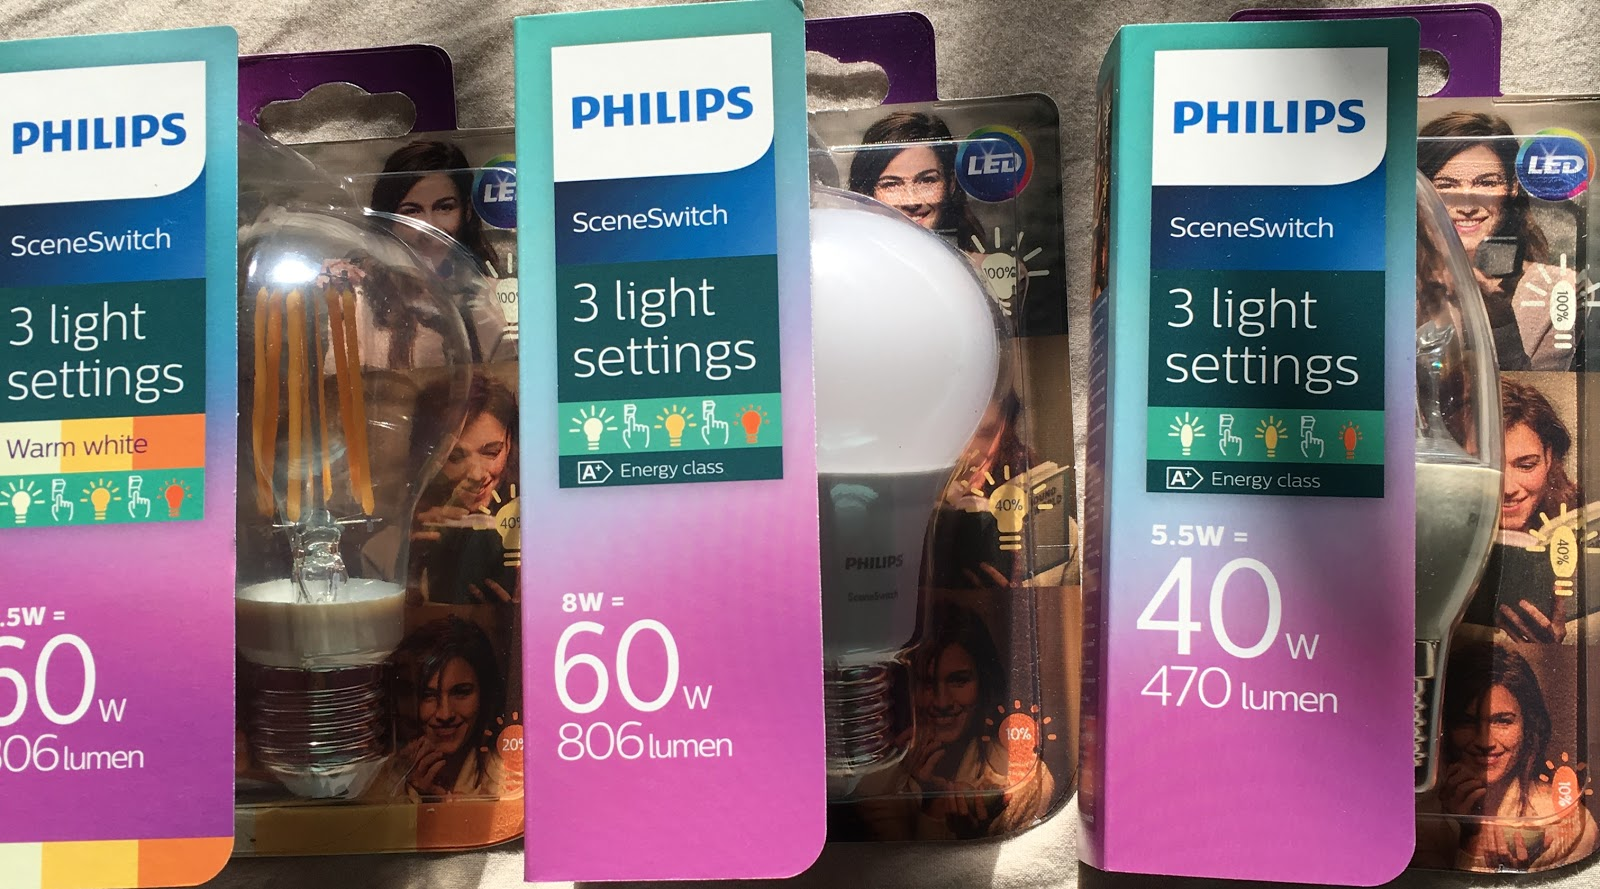 Philips Lampen Led : Ein stück heile welt : test philips sceneswitch led lampen